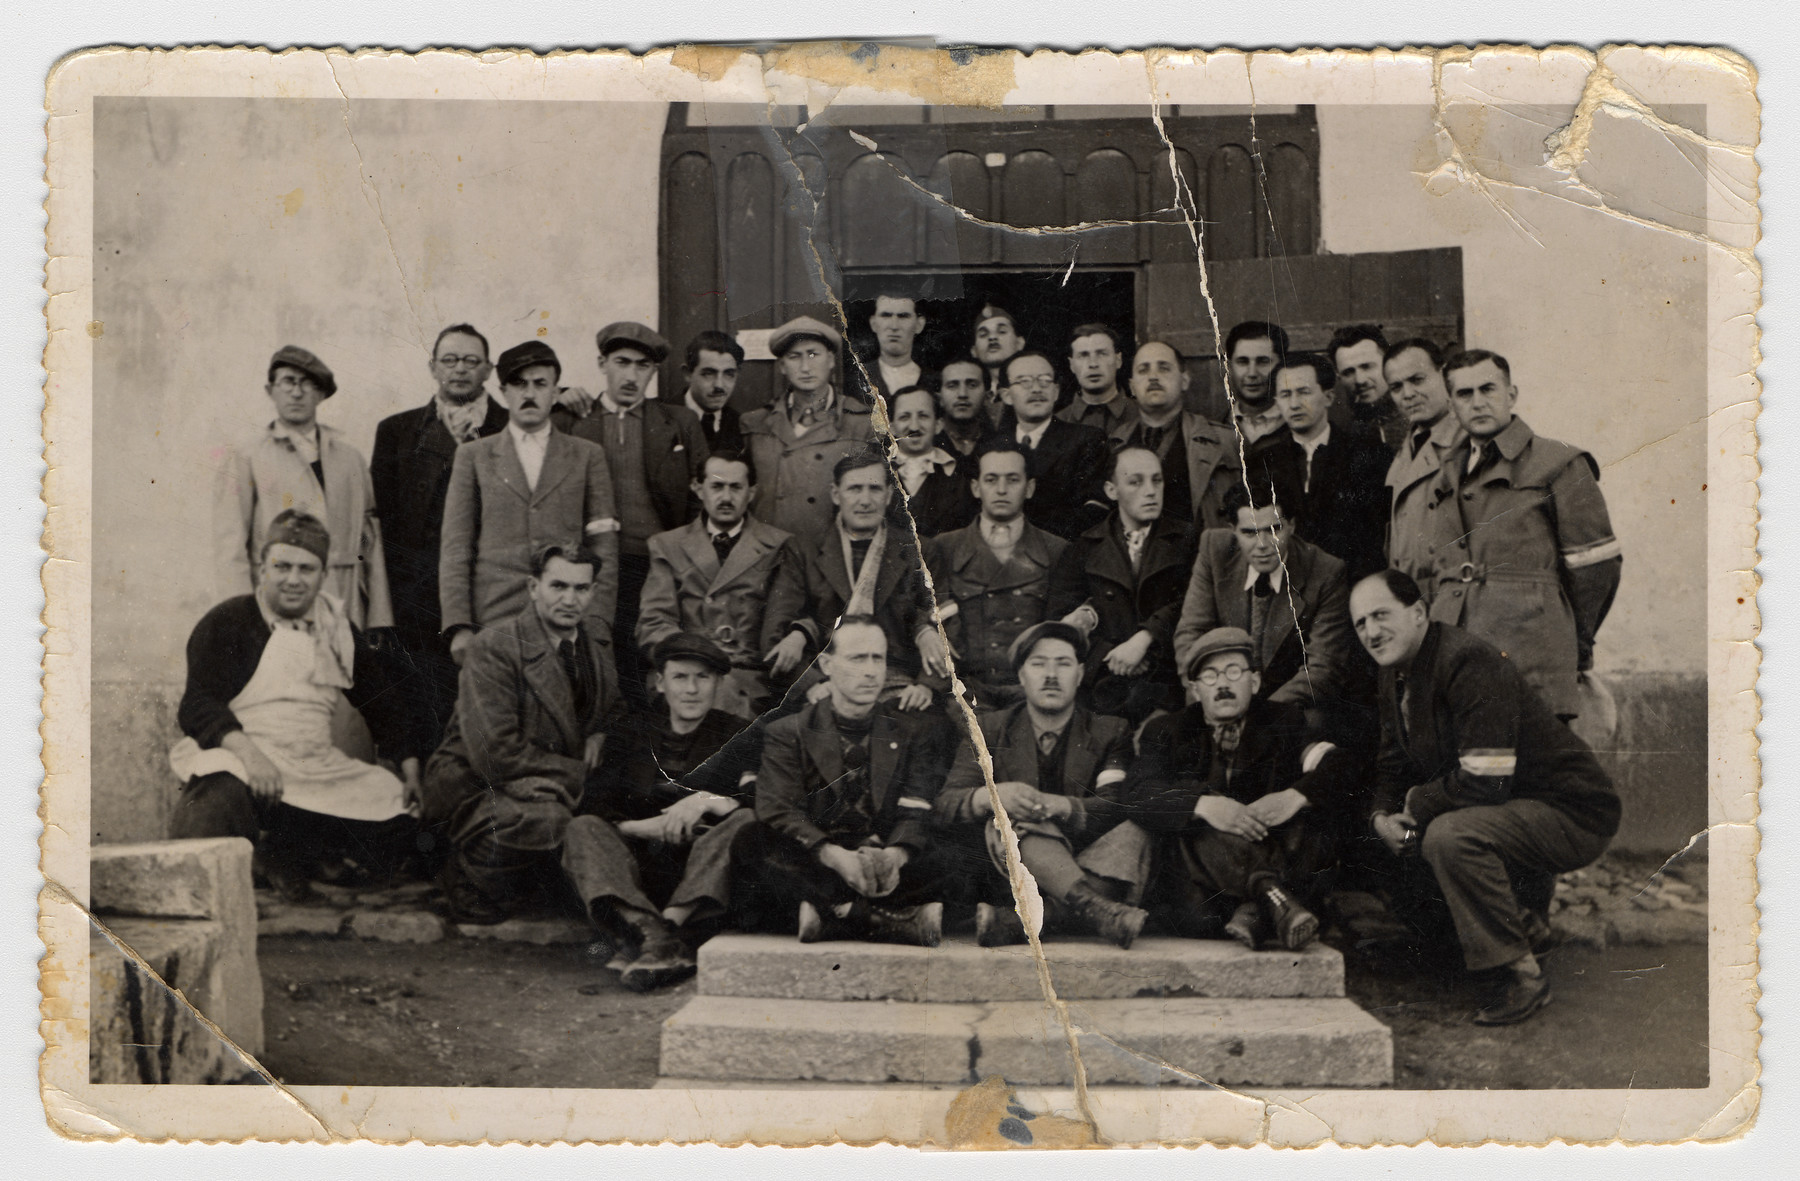 Group portrait of Jews in a Hungarian forced labor battalion, perhaps in Zircz.  Iszo Stern is standing in the back row second from the left.